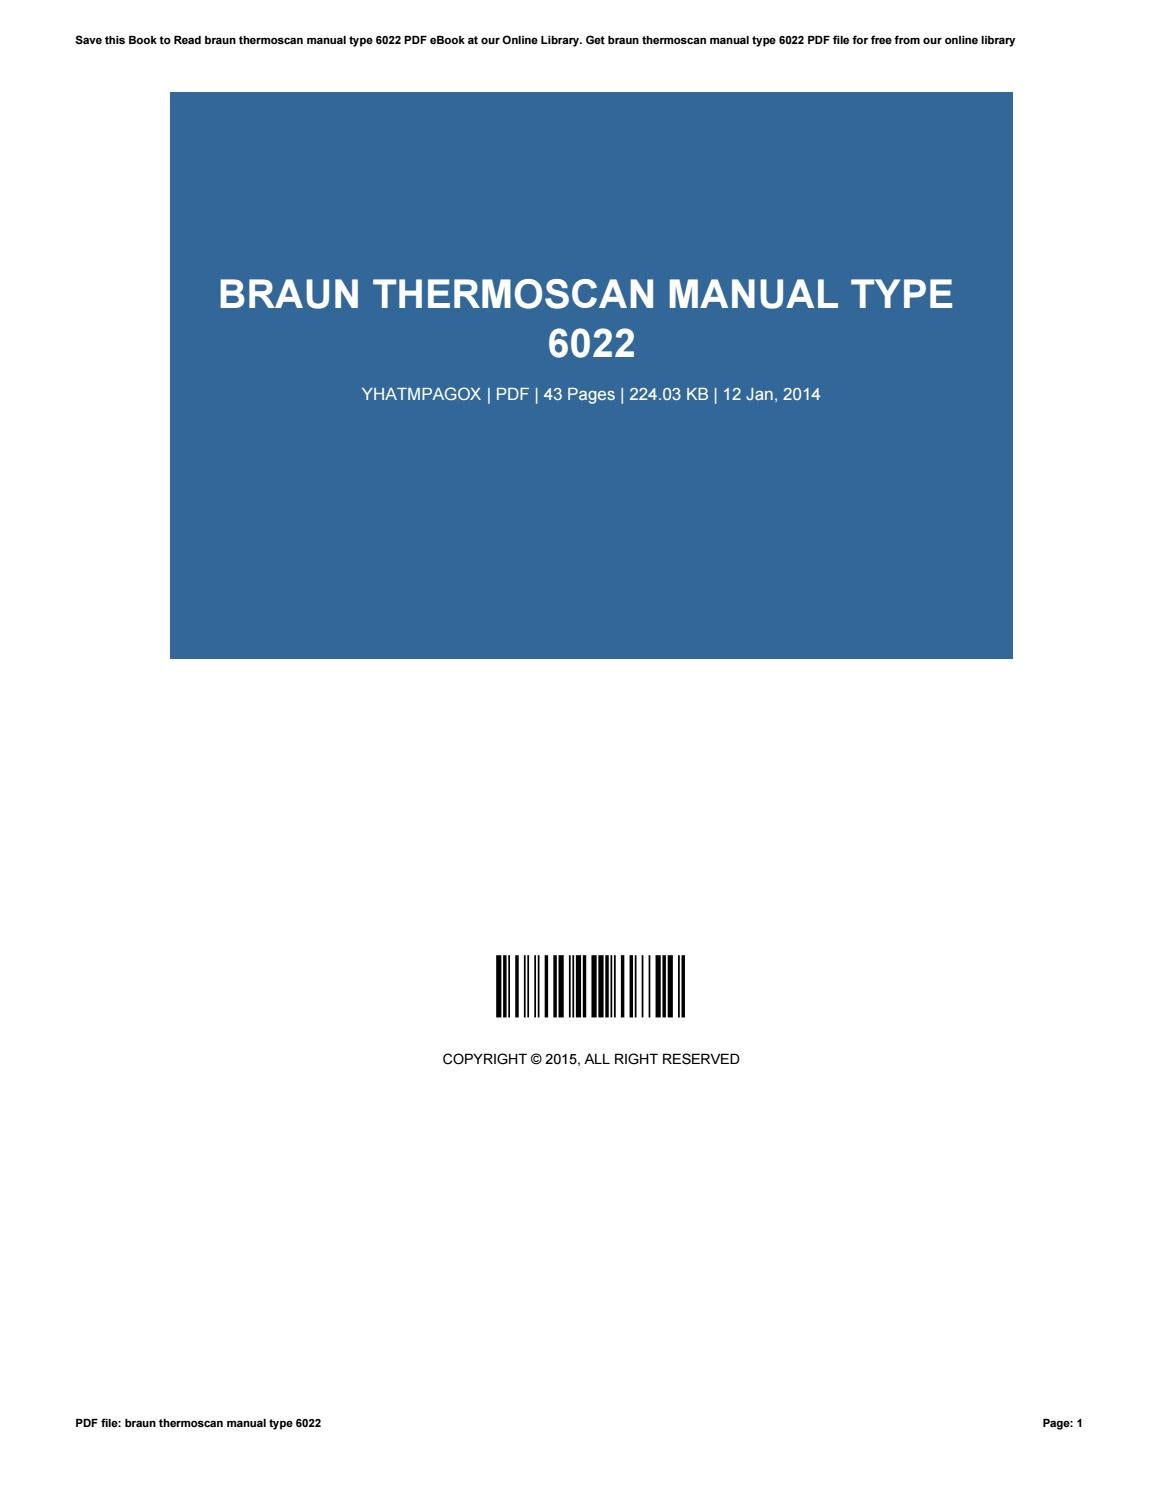 Braun Thermoscan Manual Type 6022 By Christophercarothers1569 Issuu